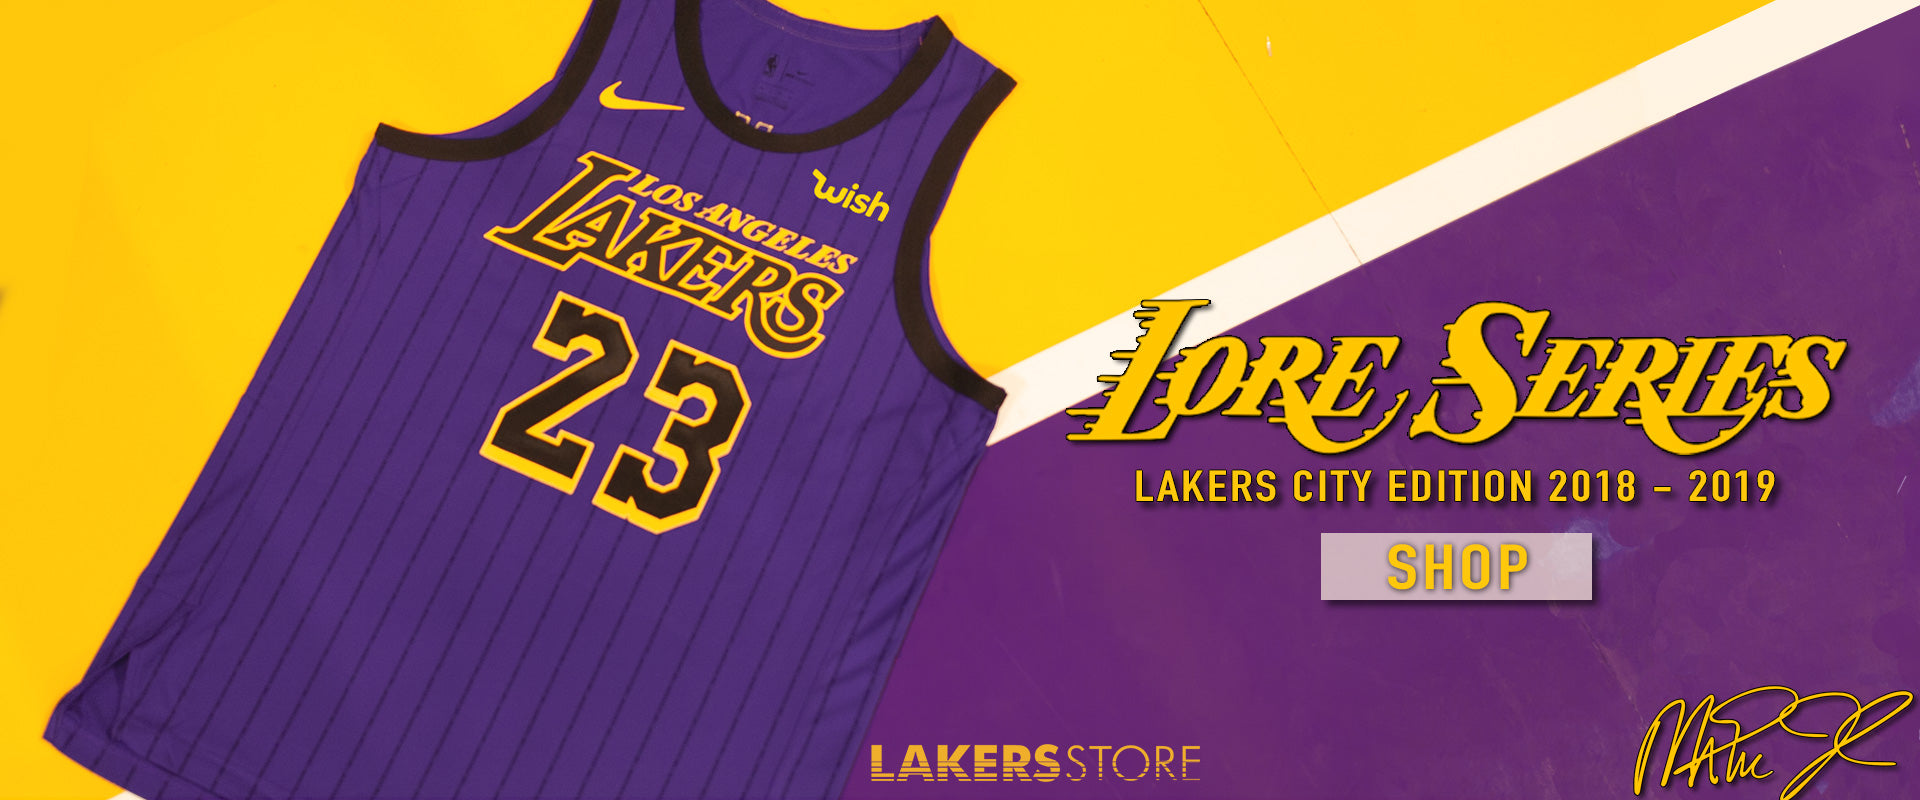 newest f11f2 21802 2018-19 City Edition Collection – Lakers Store